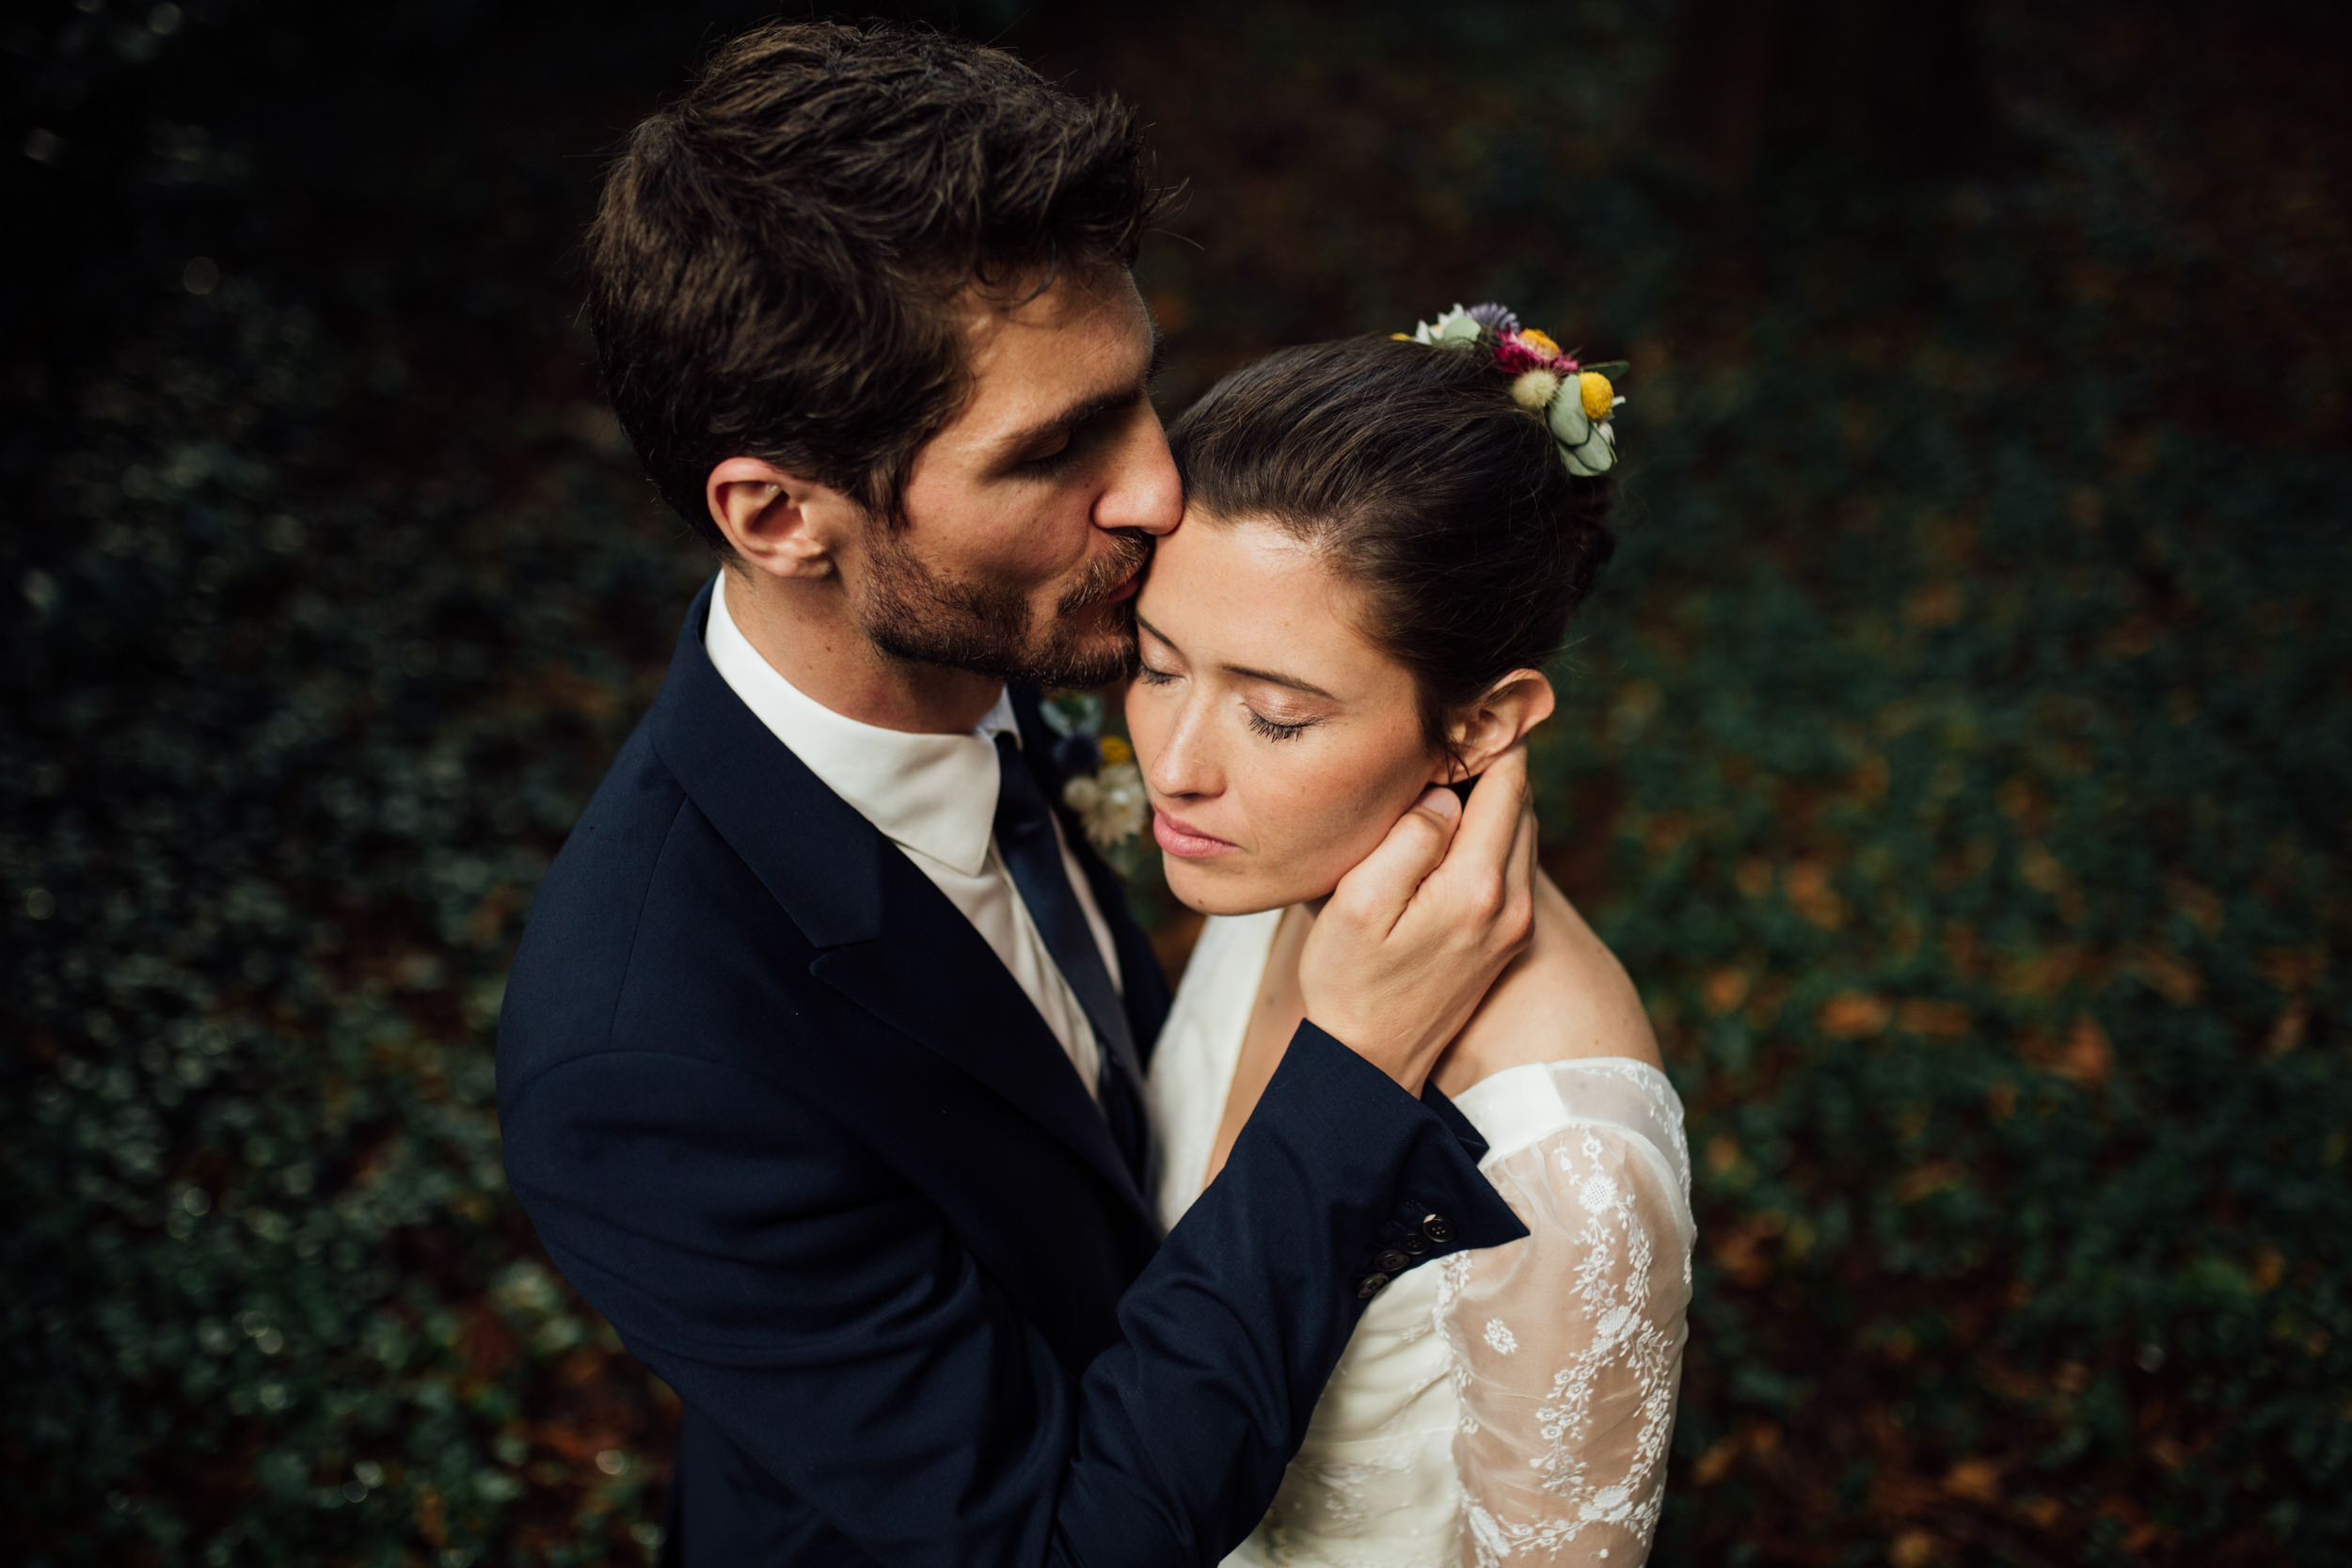 Destination-wedding-photographer-Chateau de Santeny- alex tome